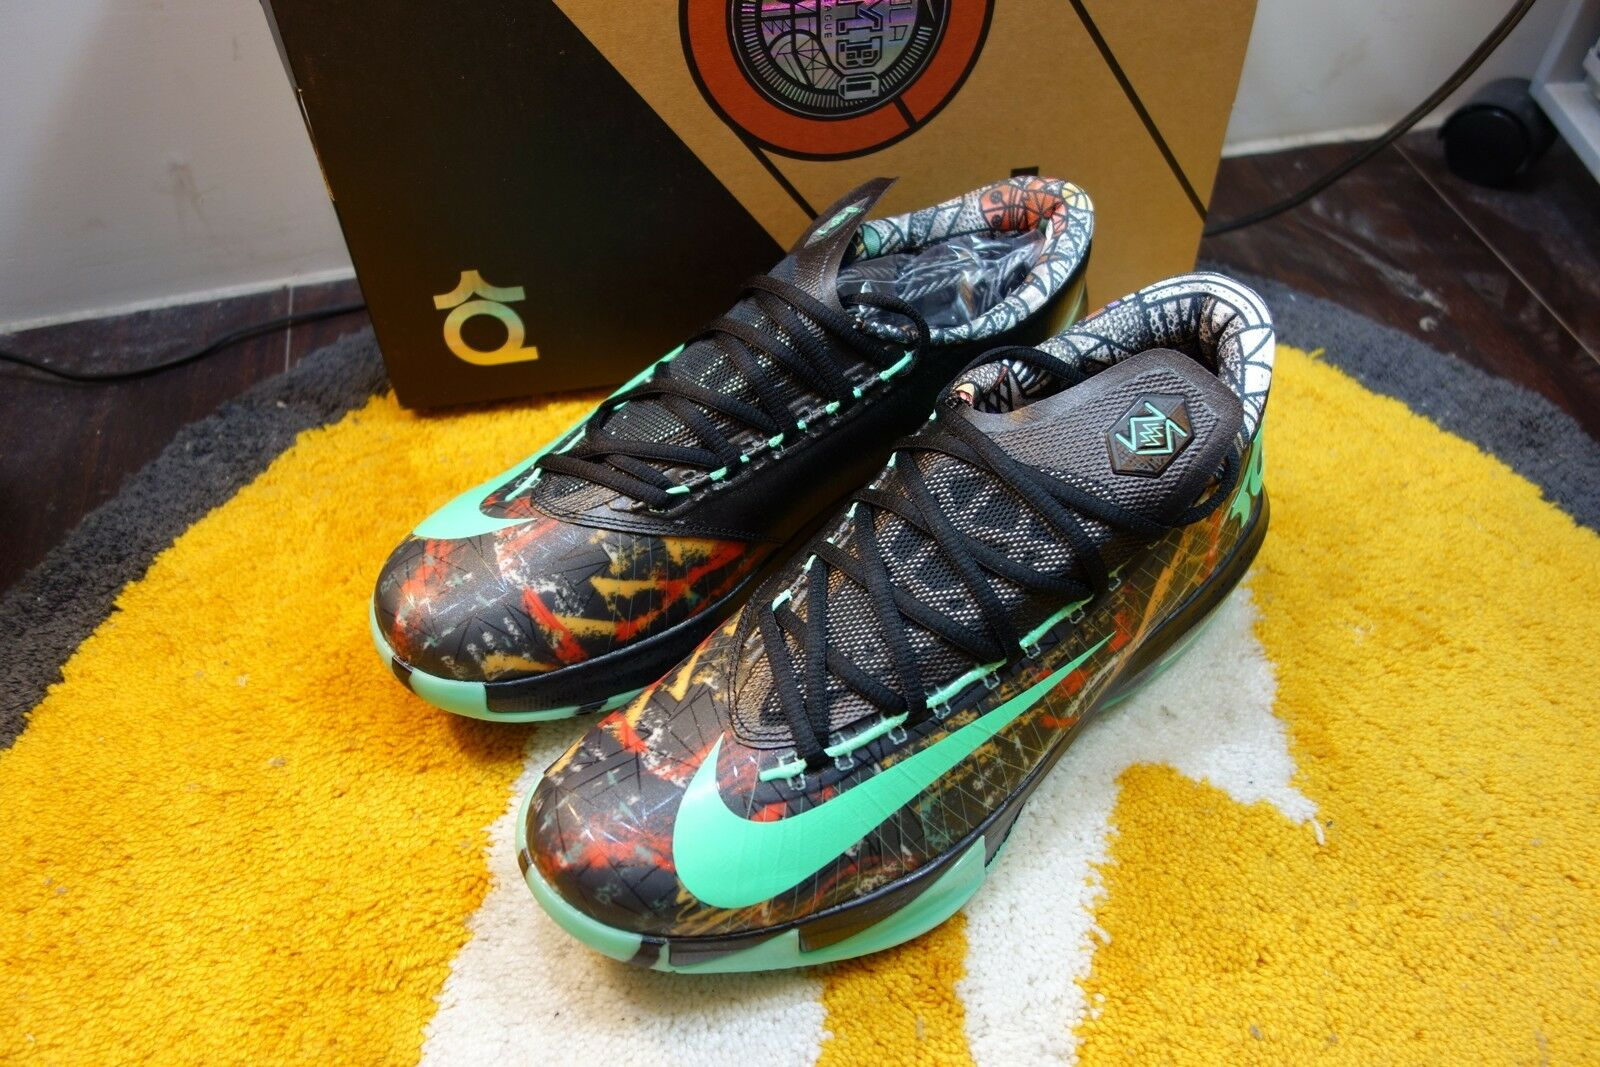 DS 2014NIKE KD VI 6 AS ILLUSION ALL STAR NOLA GUMBO GLOW 647781-930 DURANT OKC